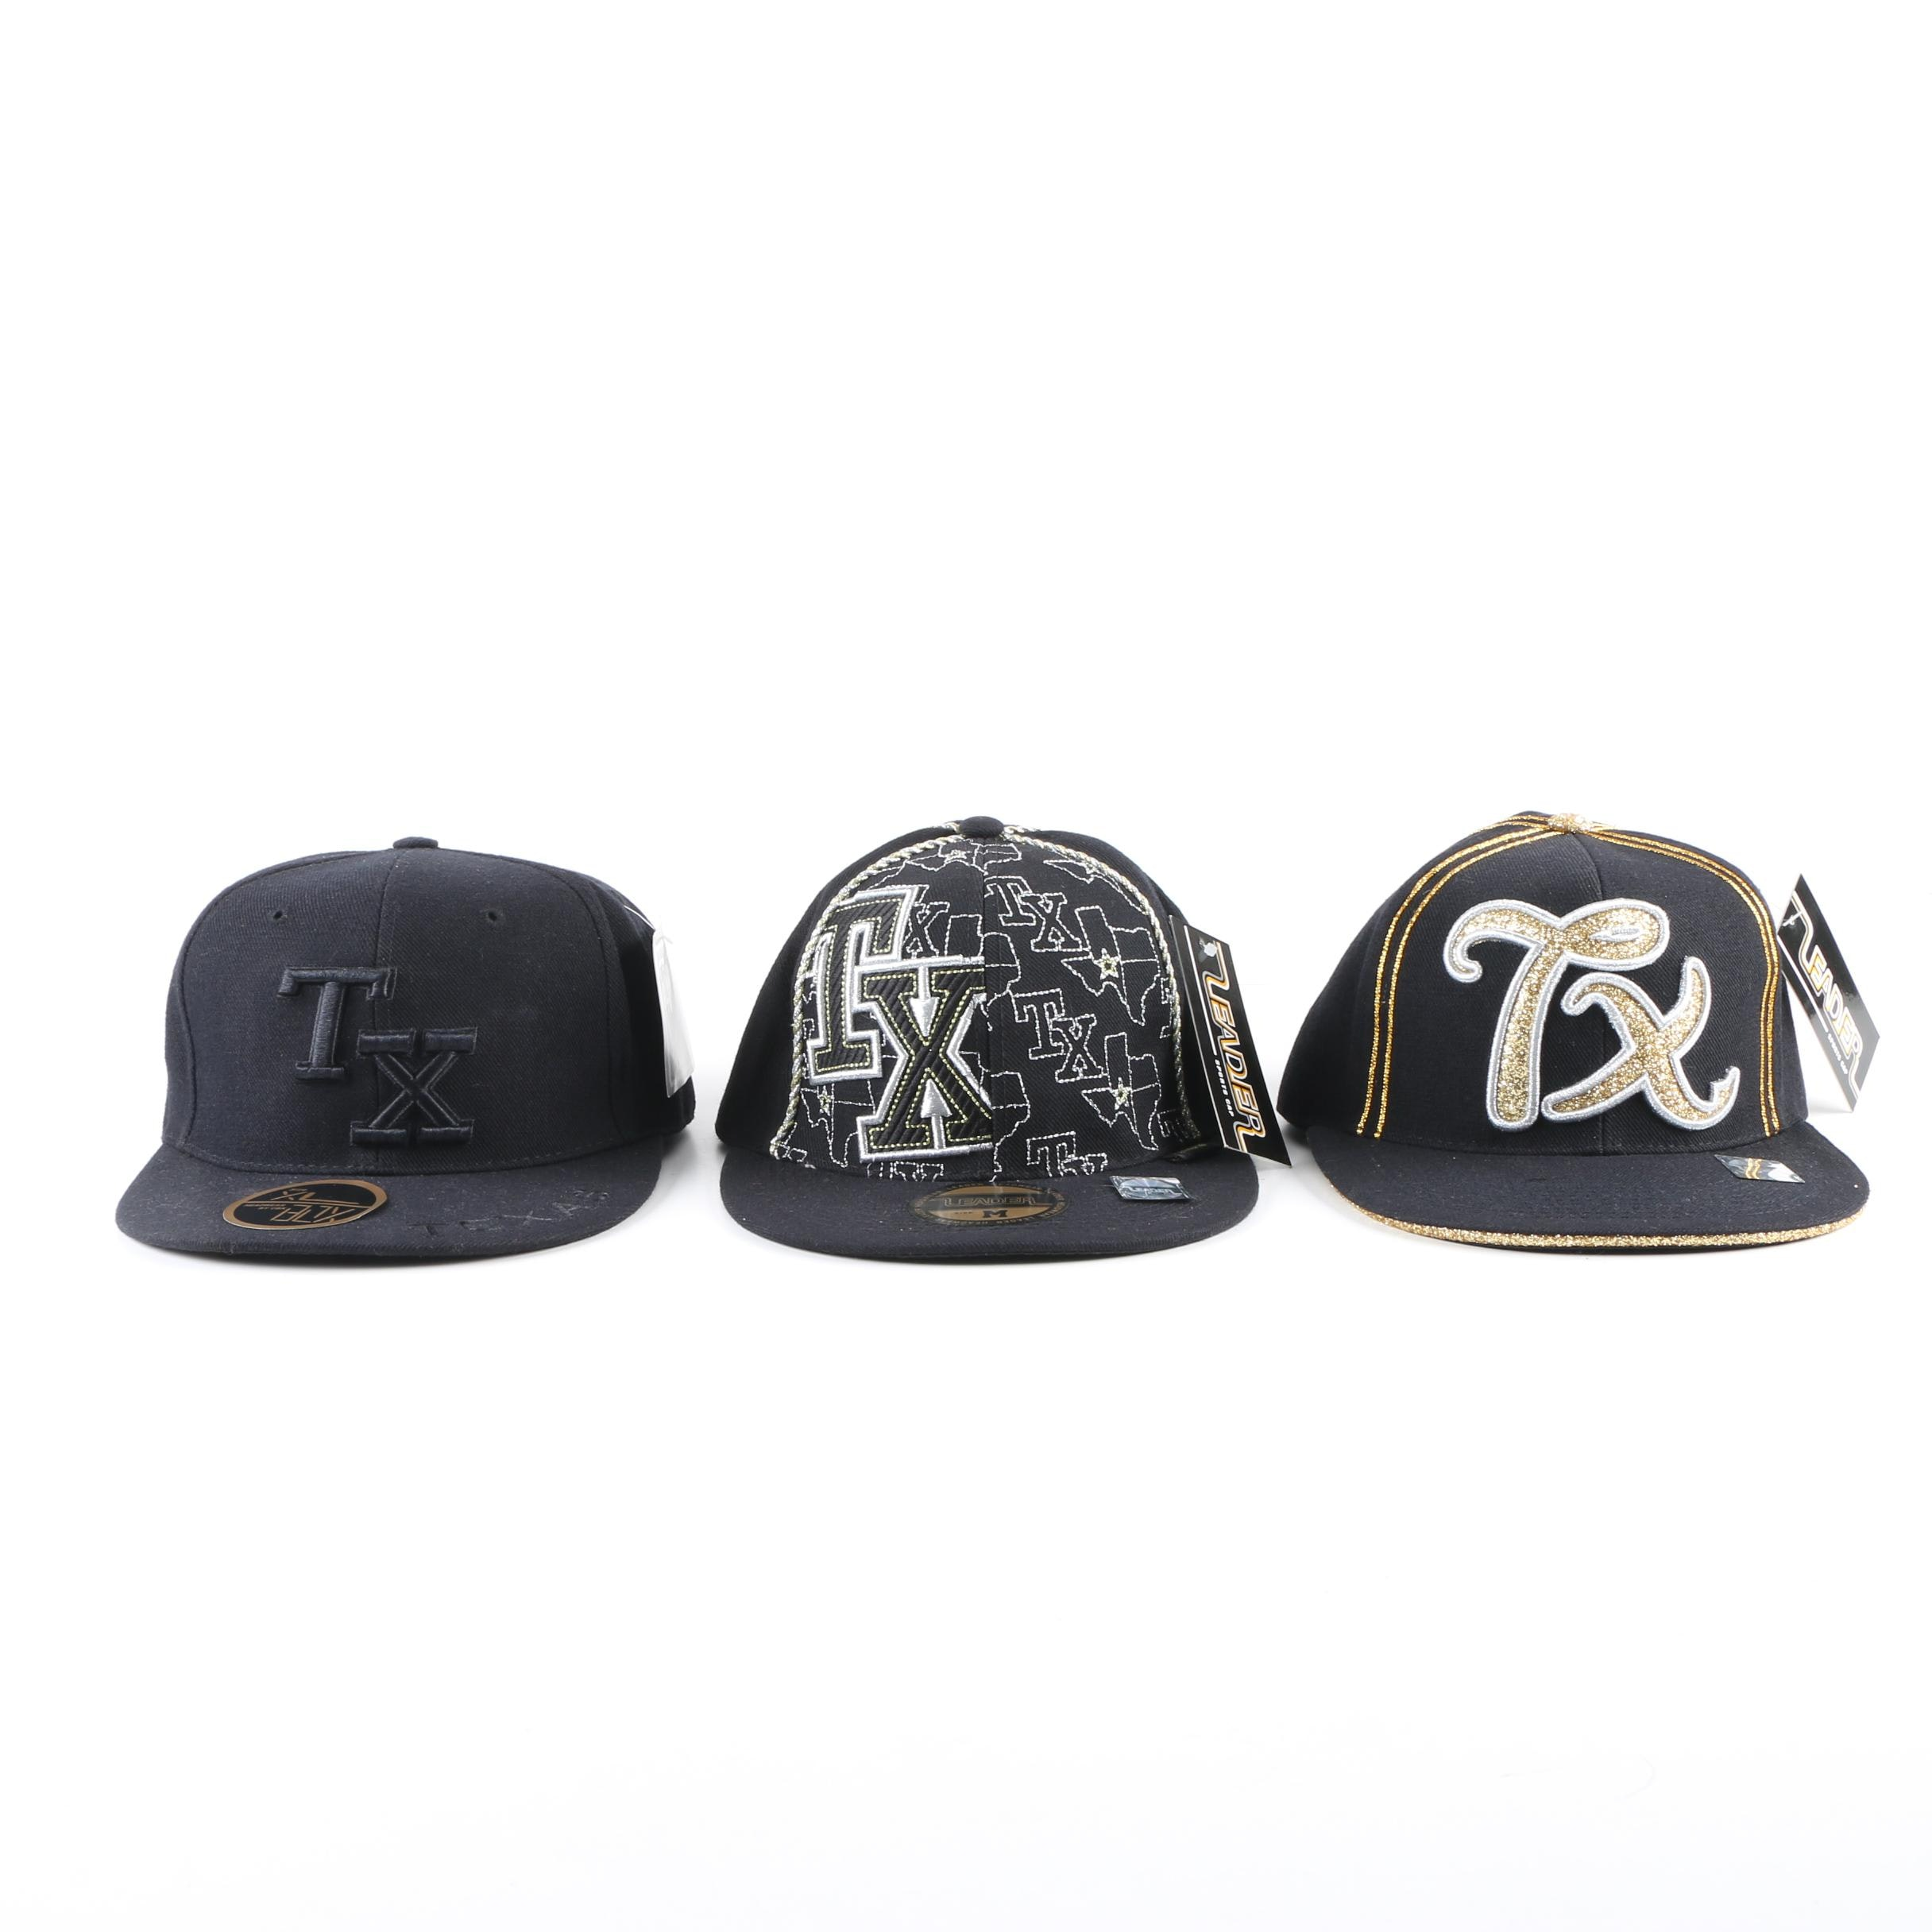 Men's Box Headwear and Leader Texas Baseball Caps